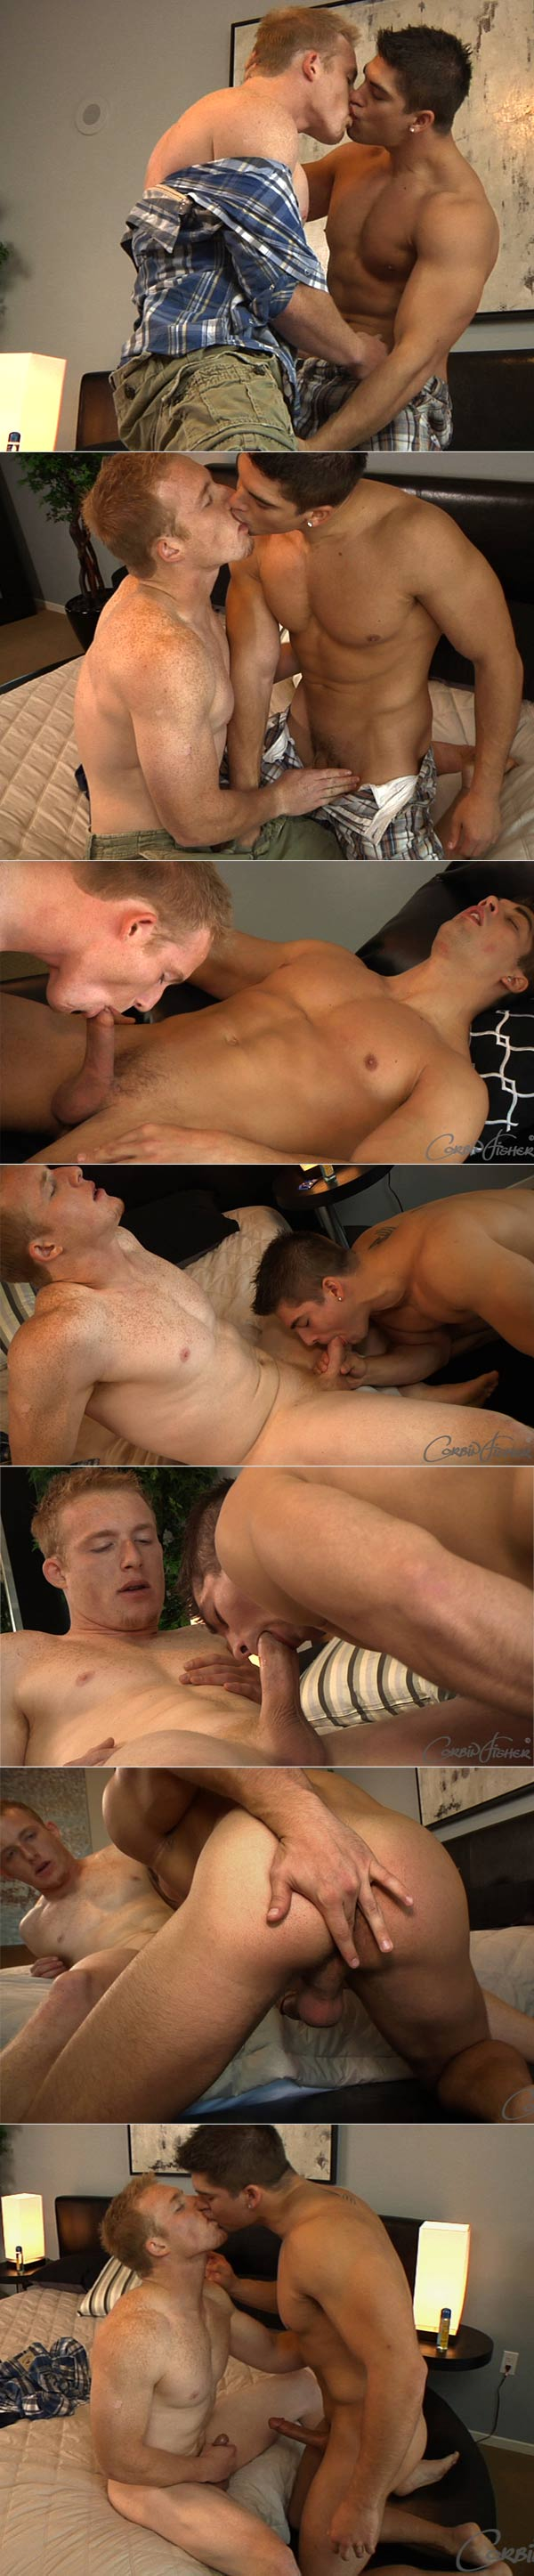 Aiden's Triple Load V at CorbinFisher